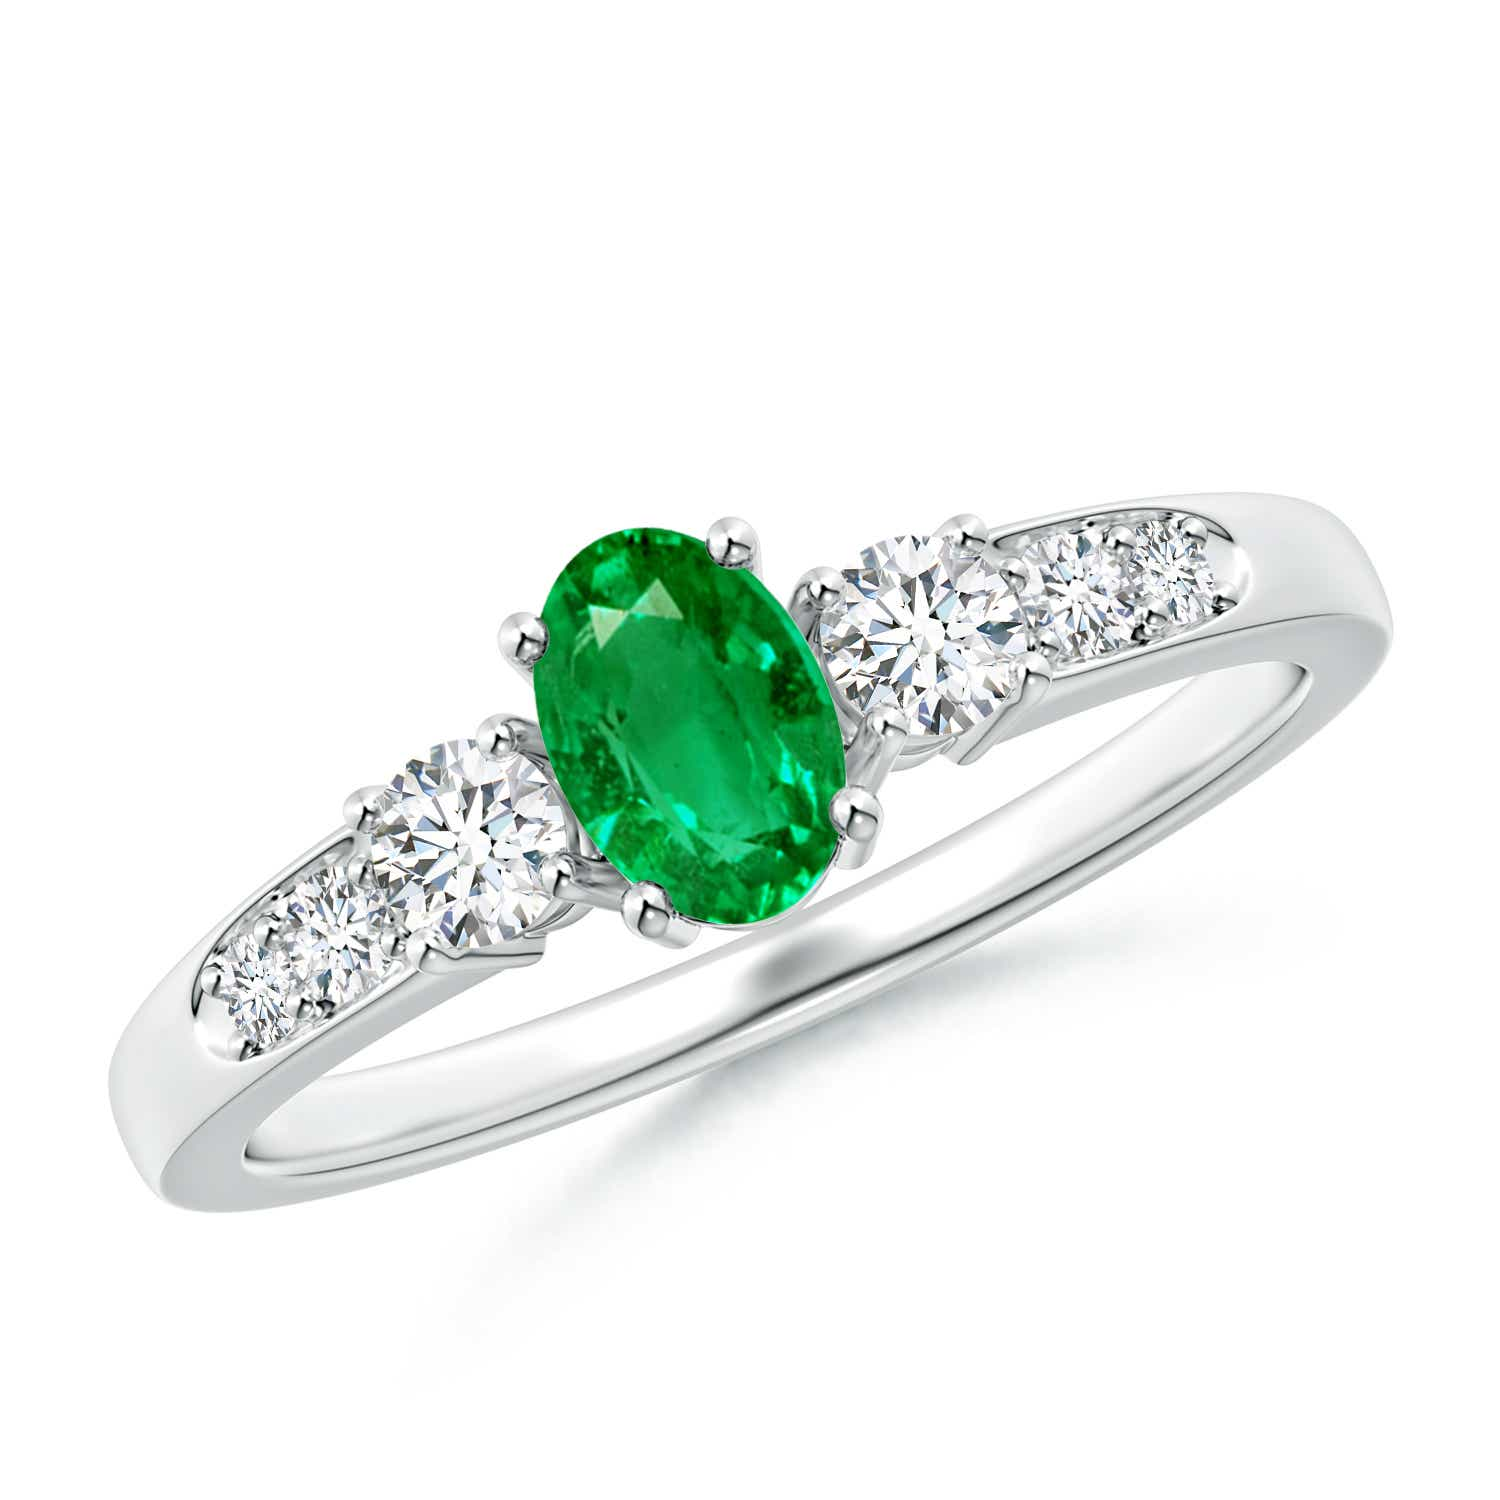 Angara Three Stone Emerald Ring in 14k Yellow Gold KIGEQDoK9